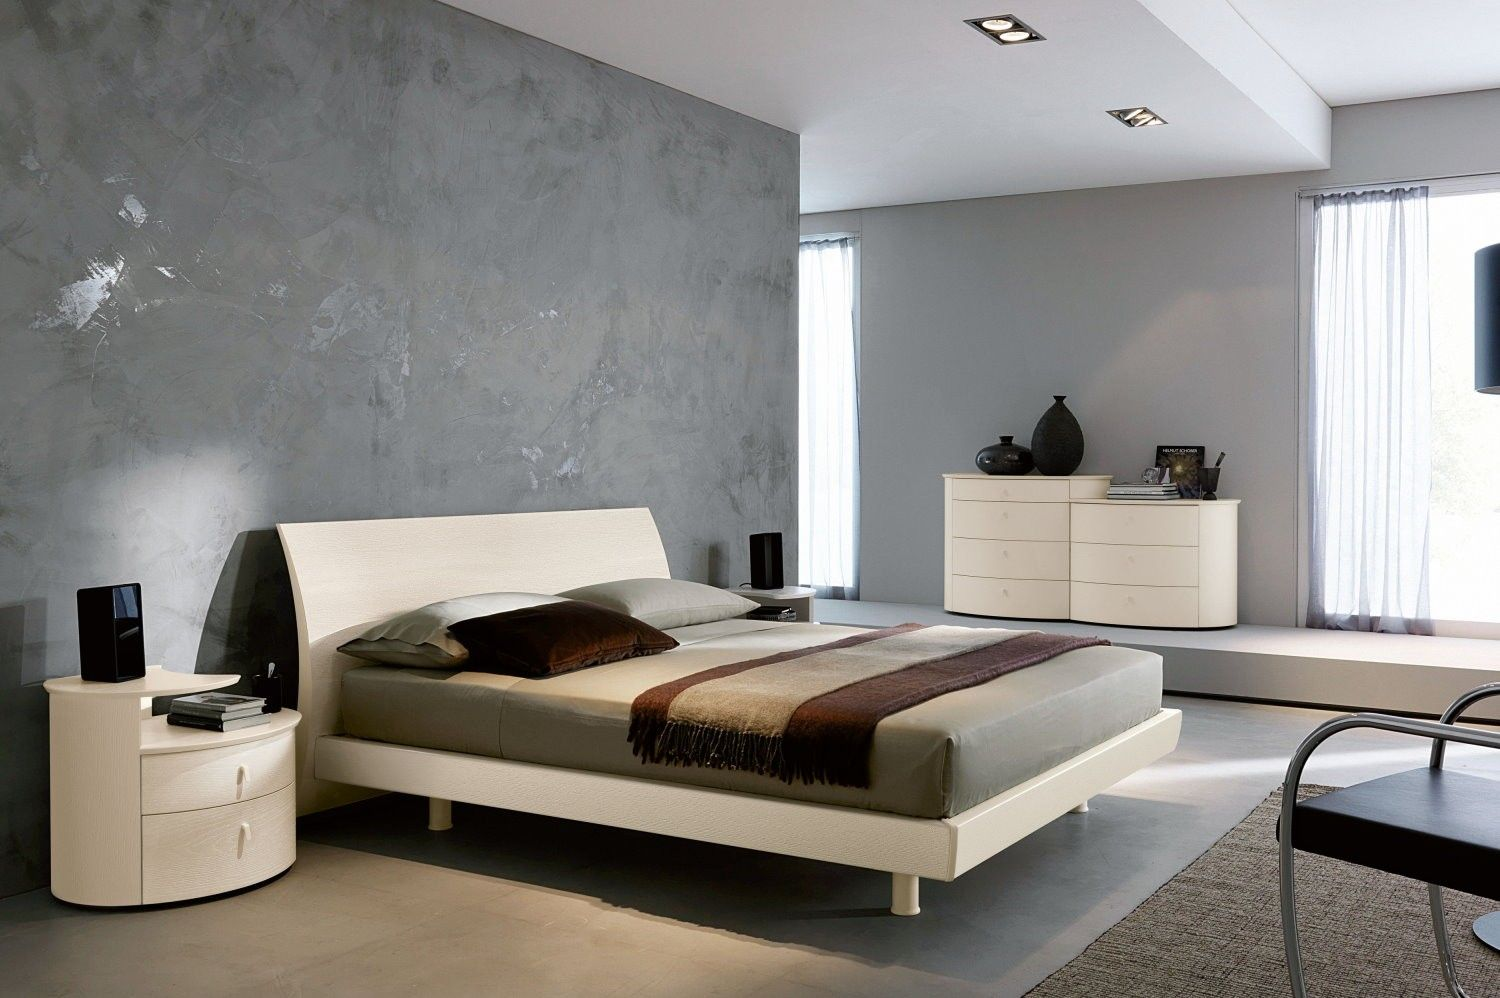 Arredare la camera da letto matrimoniale | Bedrooms and Walls